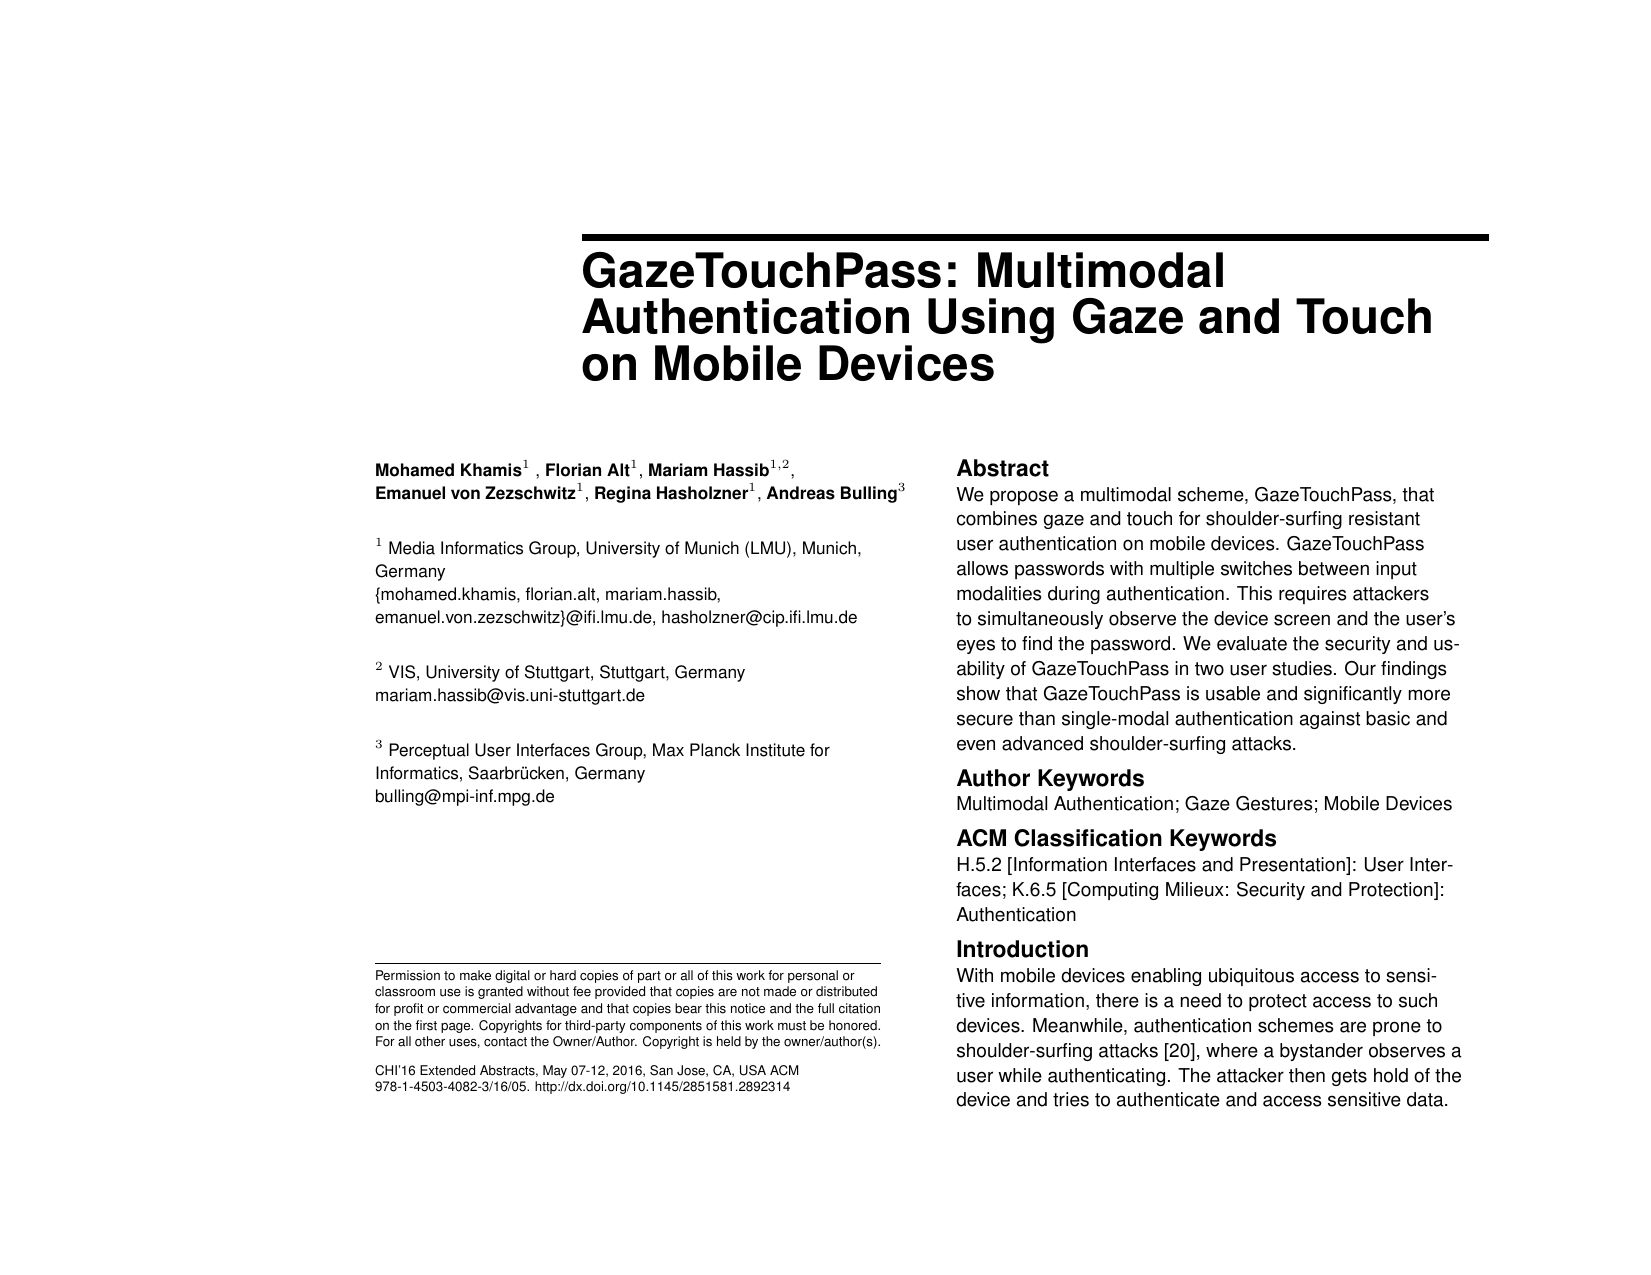 GazeTouchPass: Multimodal Authentication Using Gaze and Touch on Mobile Devices